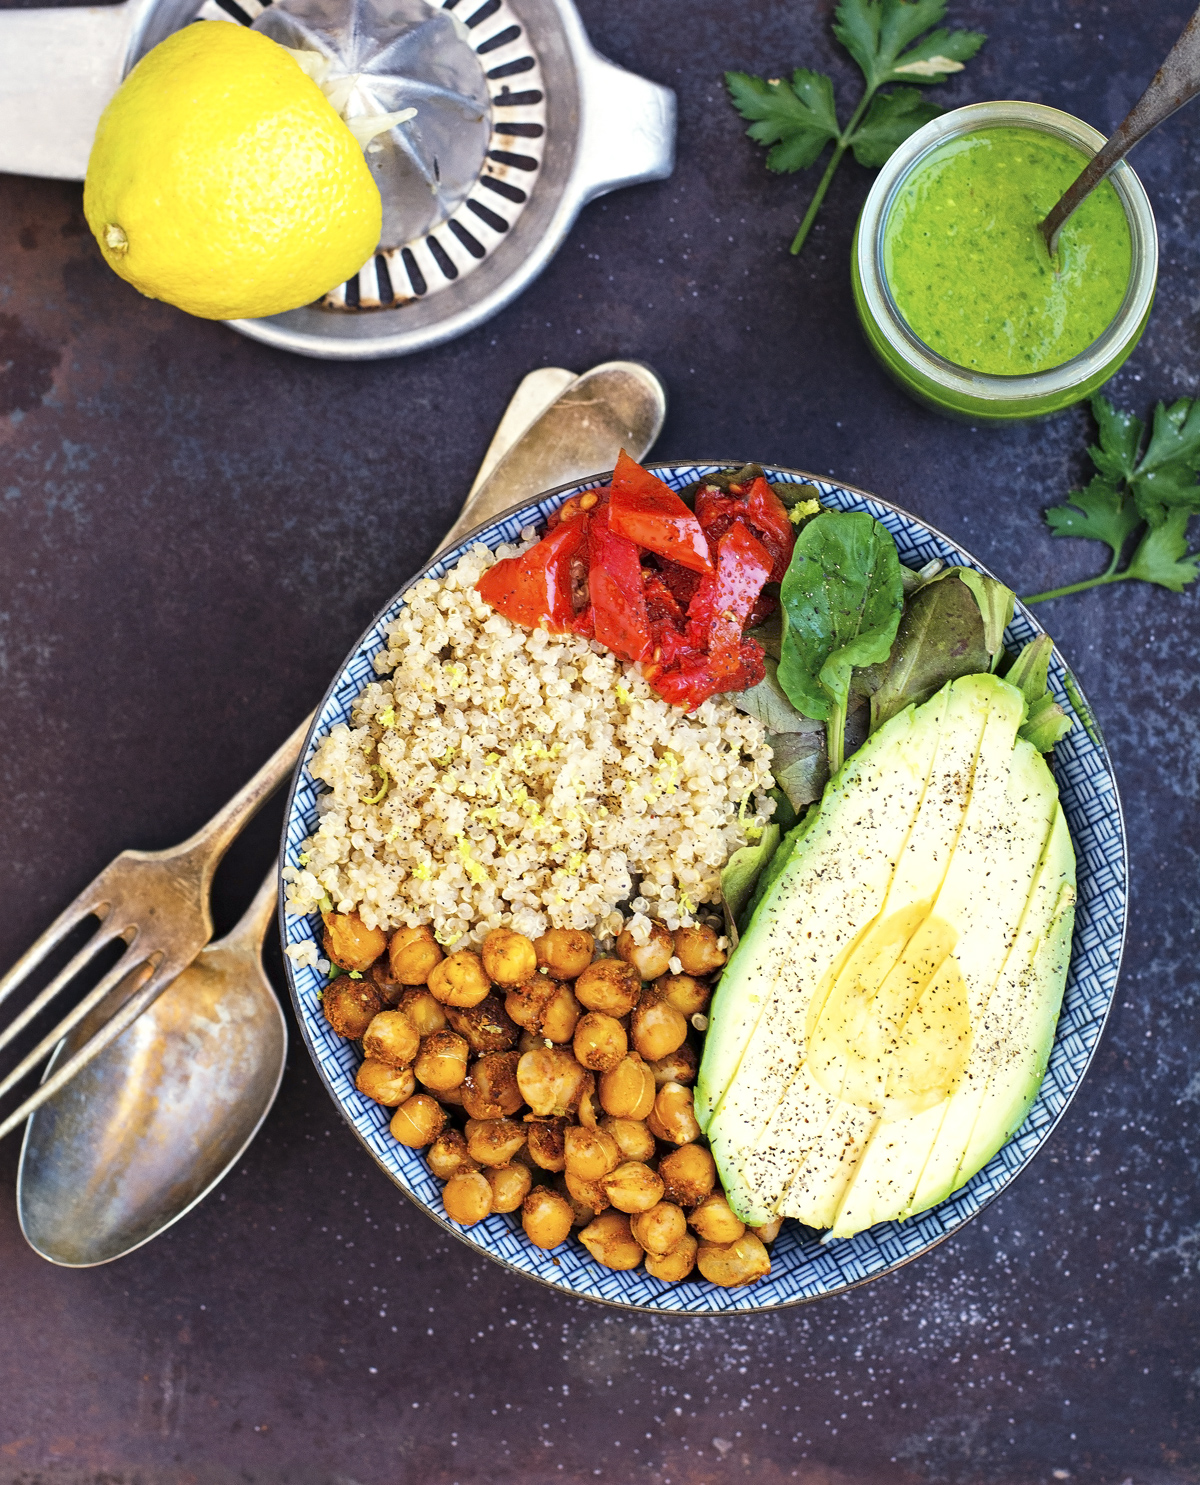 (Vegan) Buddha Bowl with Lemon Parsley Dressing